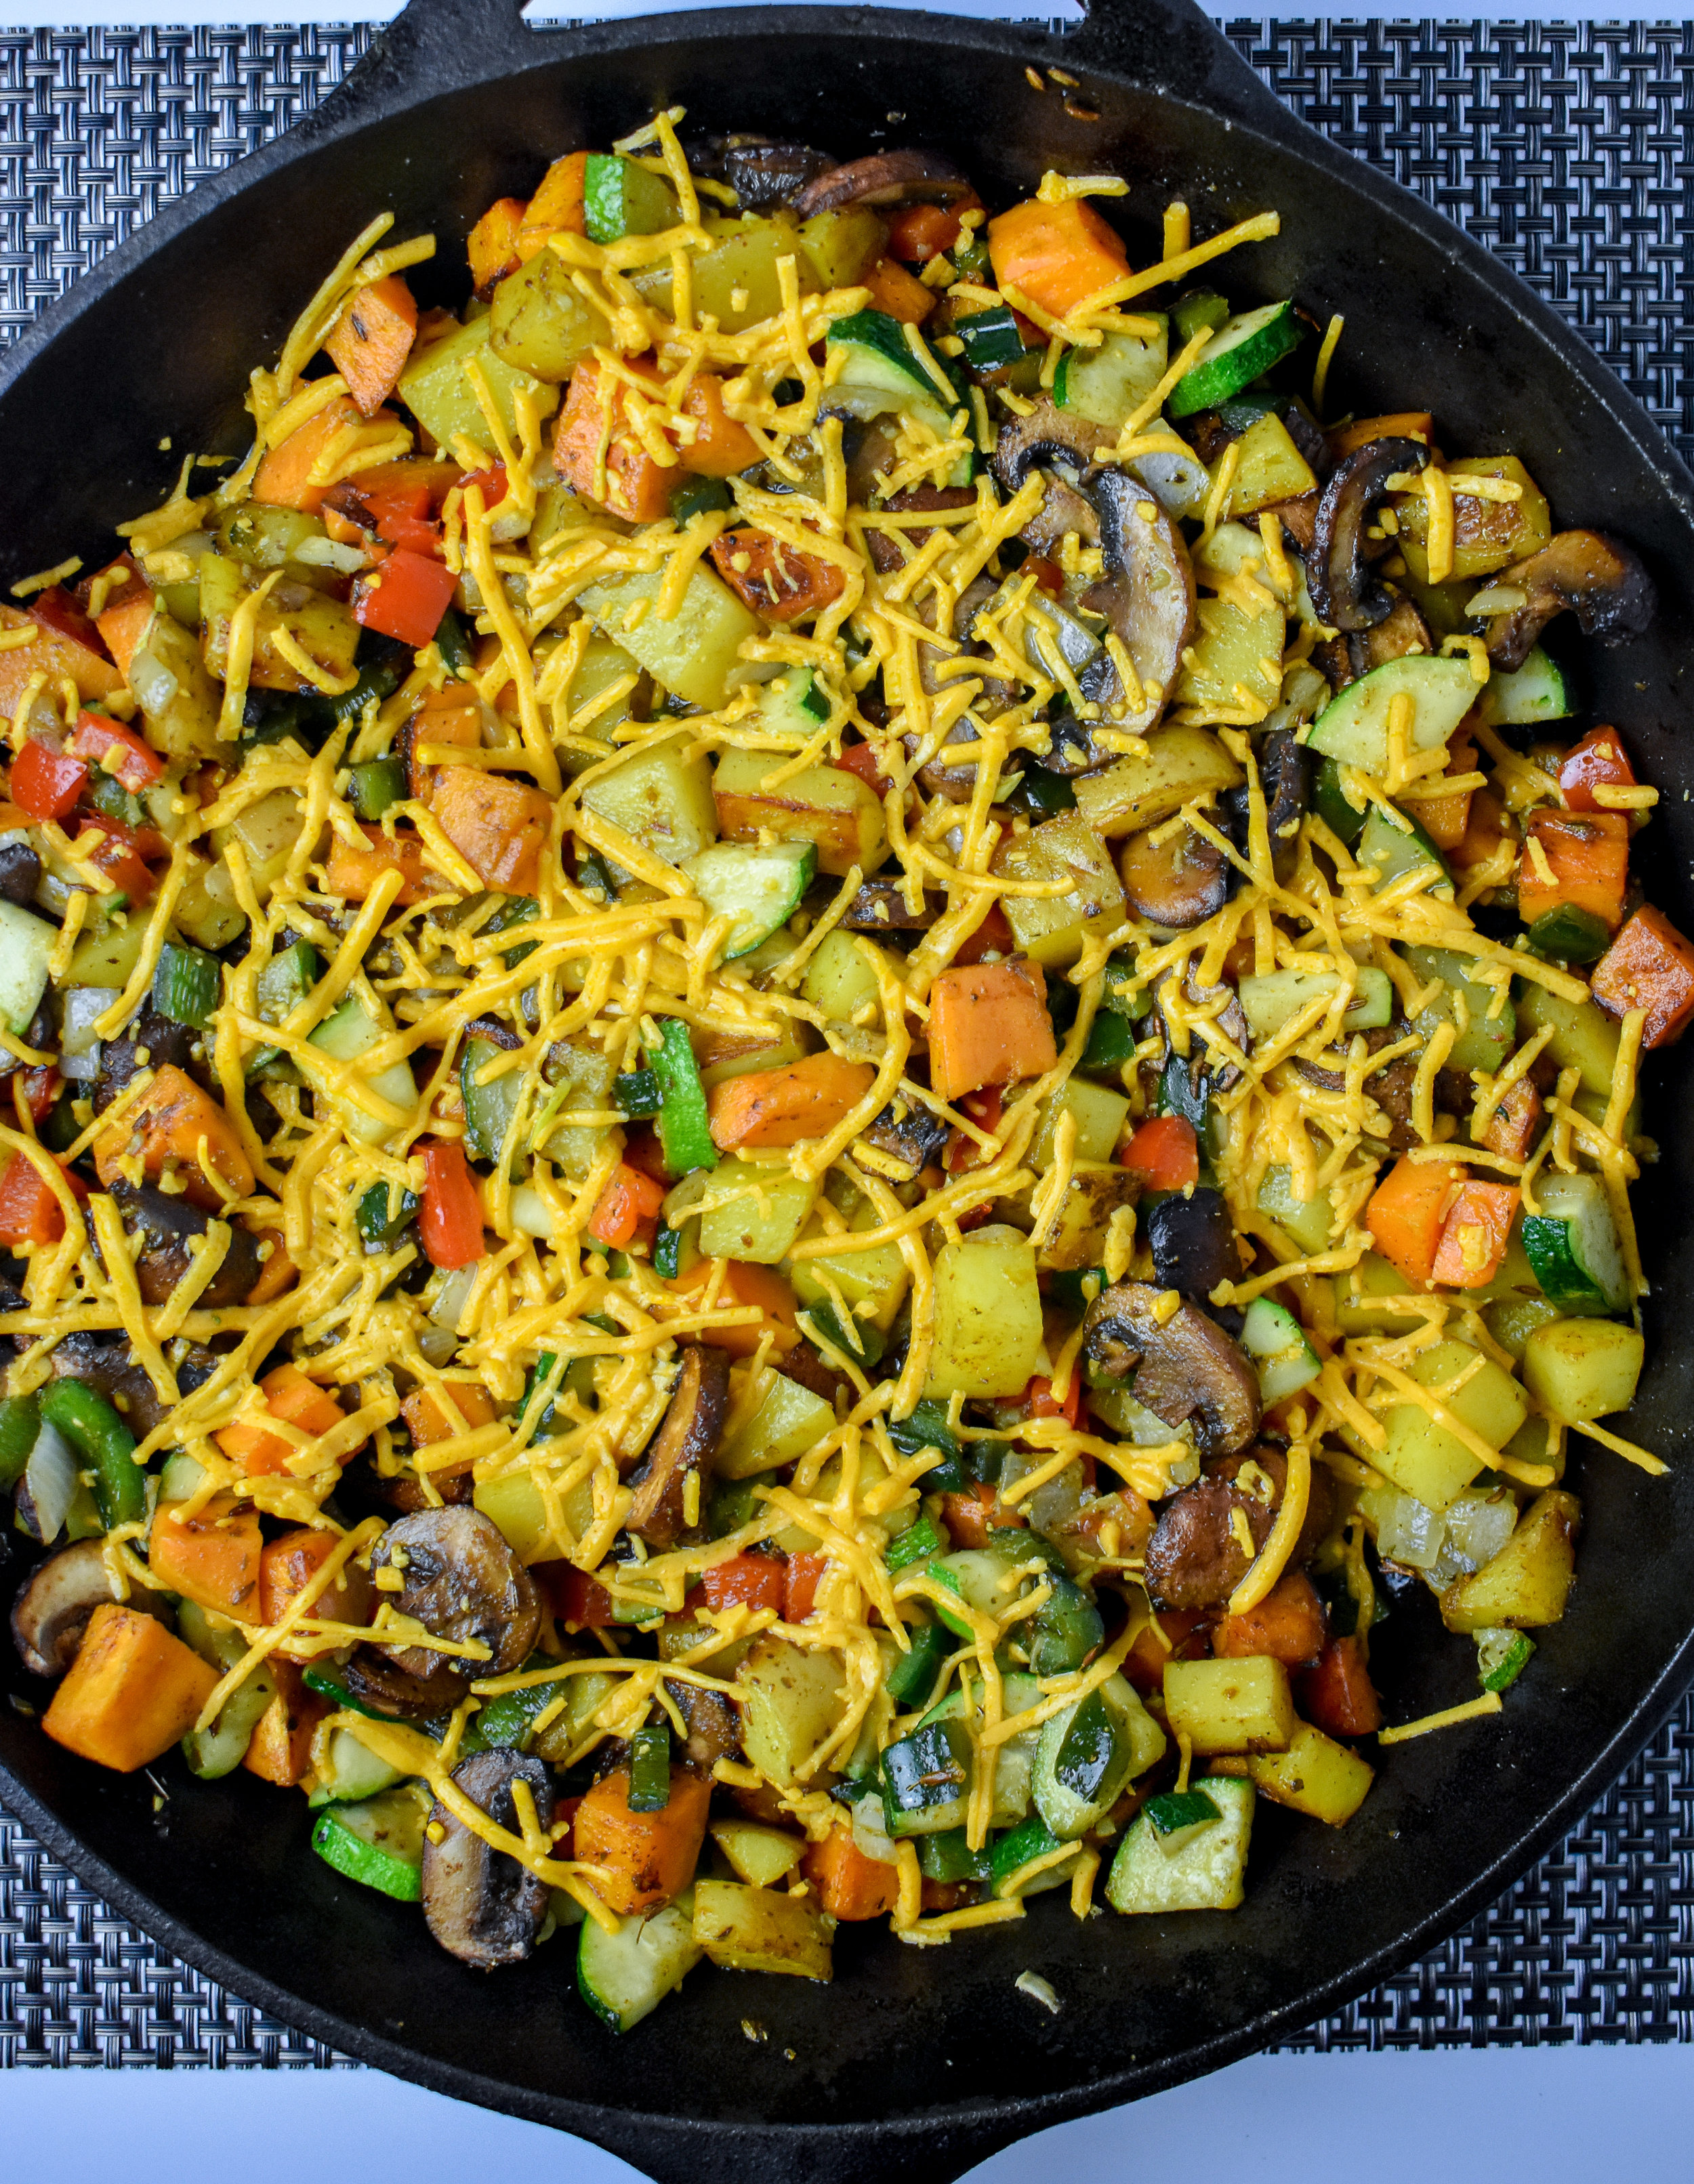 7. Next, once the potatoes are done. Turn off the heat. Add in the veggies +mushrooms. Mix well. Sprinkle on cheese + green onions. Let sit.